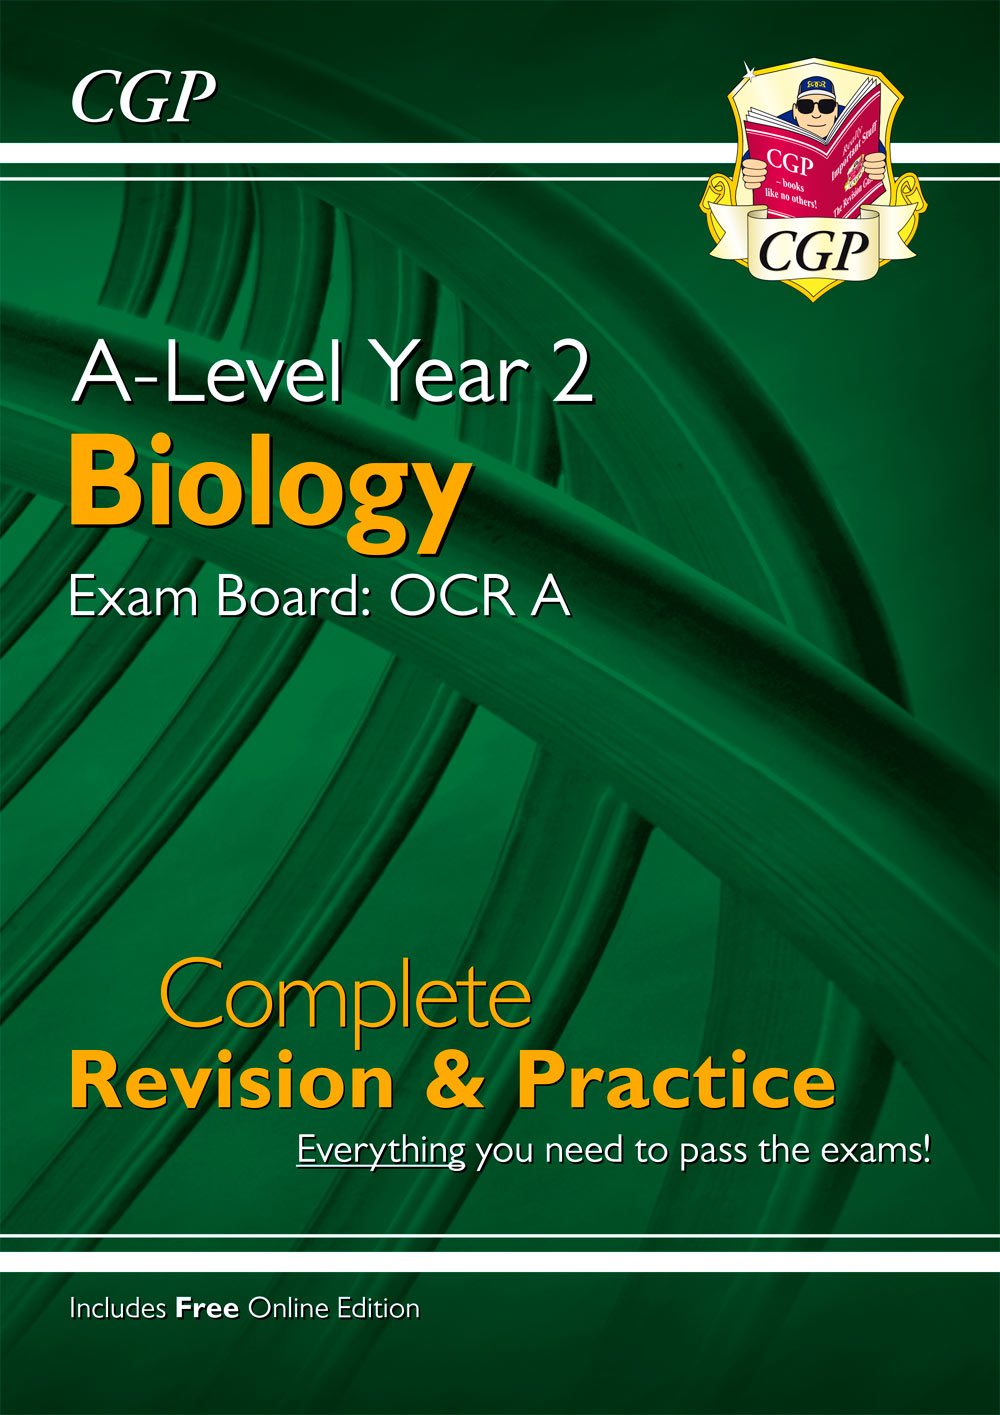 BRAR63 - New A-Level Biology: OCR A Year 2 Complete Revision & Practice with Online Edition